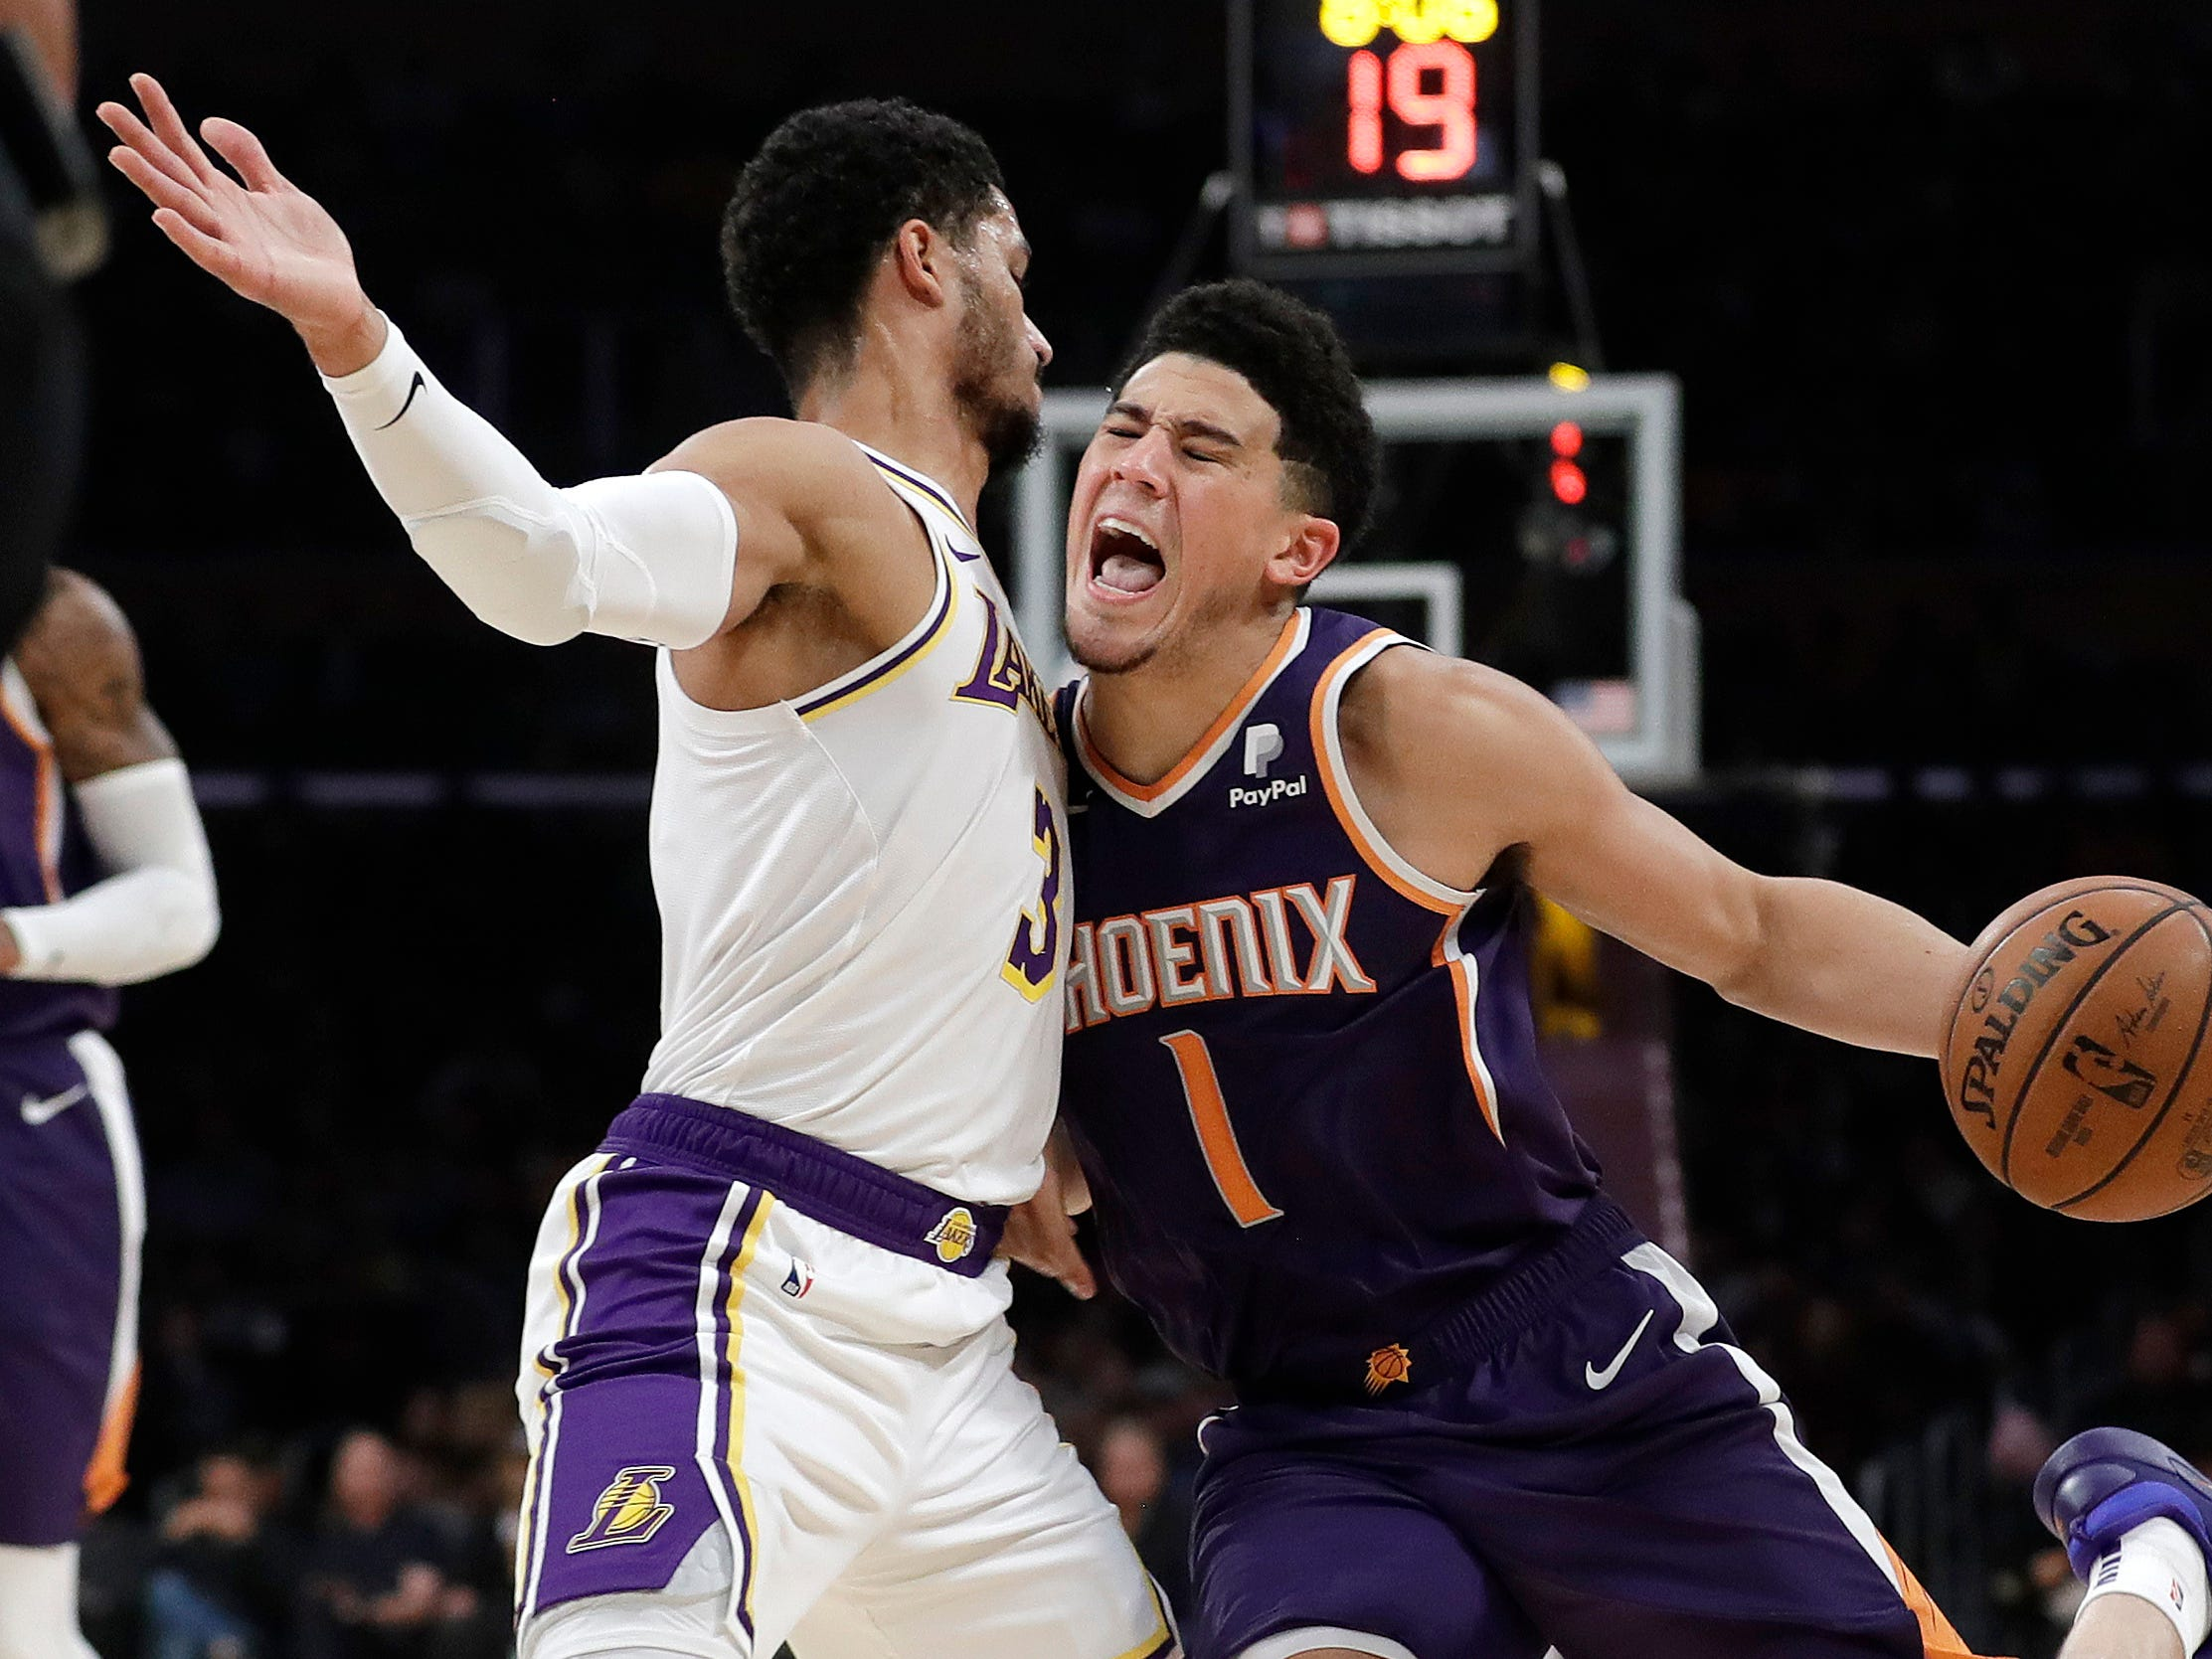 Phoenix Suns' Devin Booker (1) is defended by Los Angeles Lakers' Josh Hart (3) during the first half of an NBA basketball game Sunday, Dec. 2, 2018, in Los Angeles. (AP Photo/Marcio Jose Sanchez)